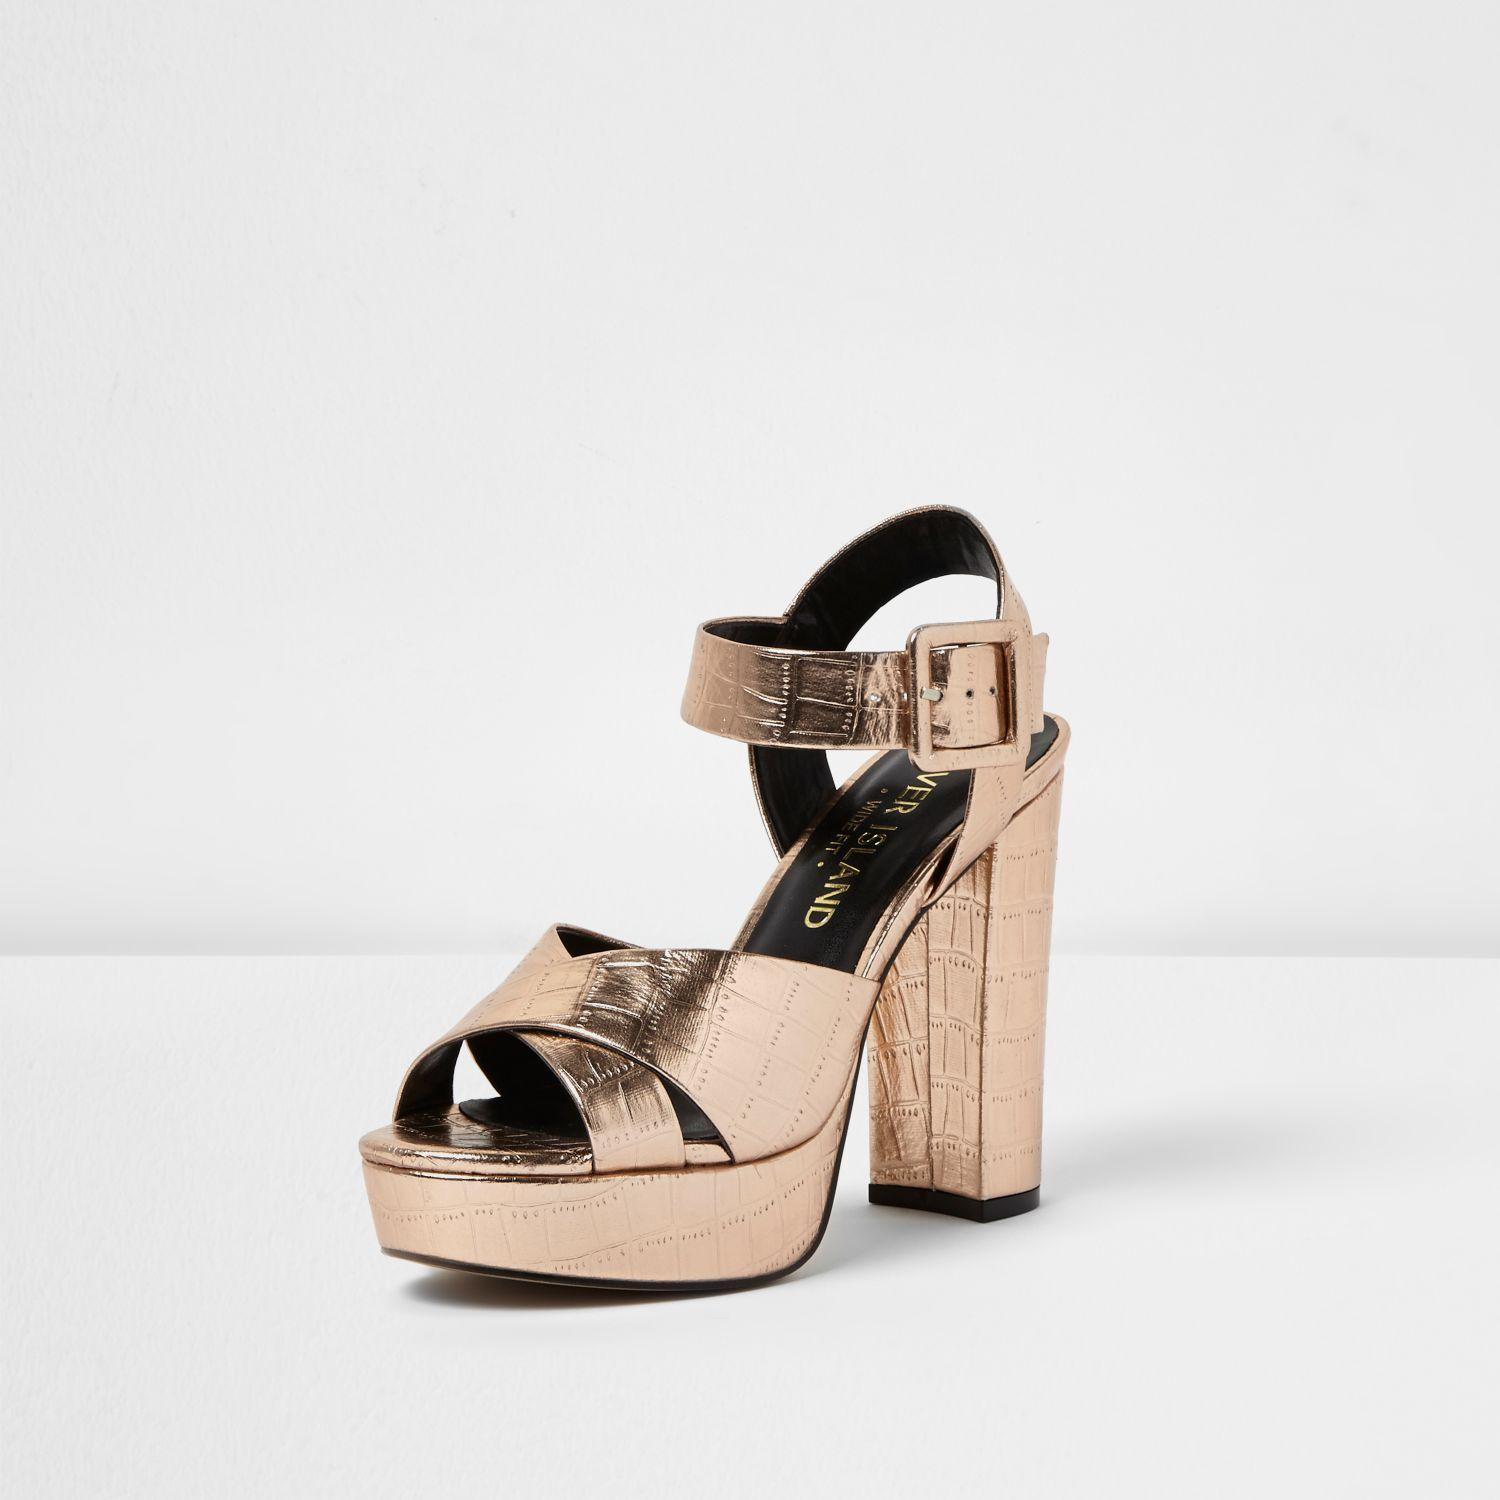 cac800b0dd71 Lyst - River Island Rose Gold Wide Fit Platform Heel Sandals in Yellow